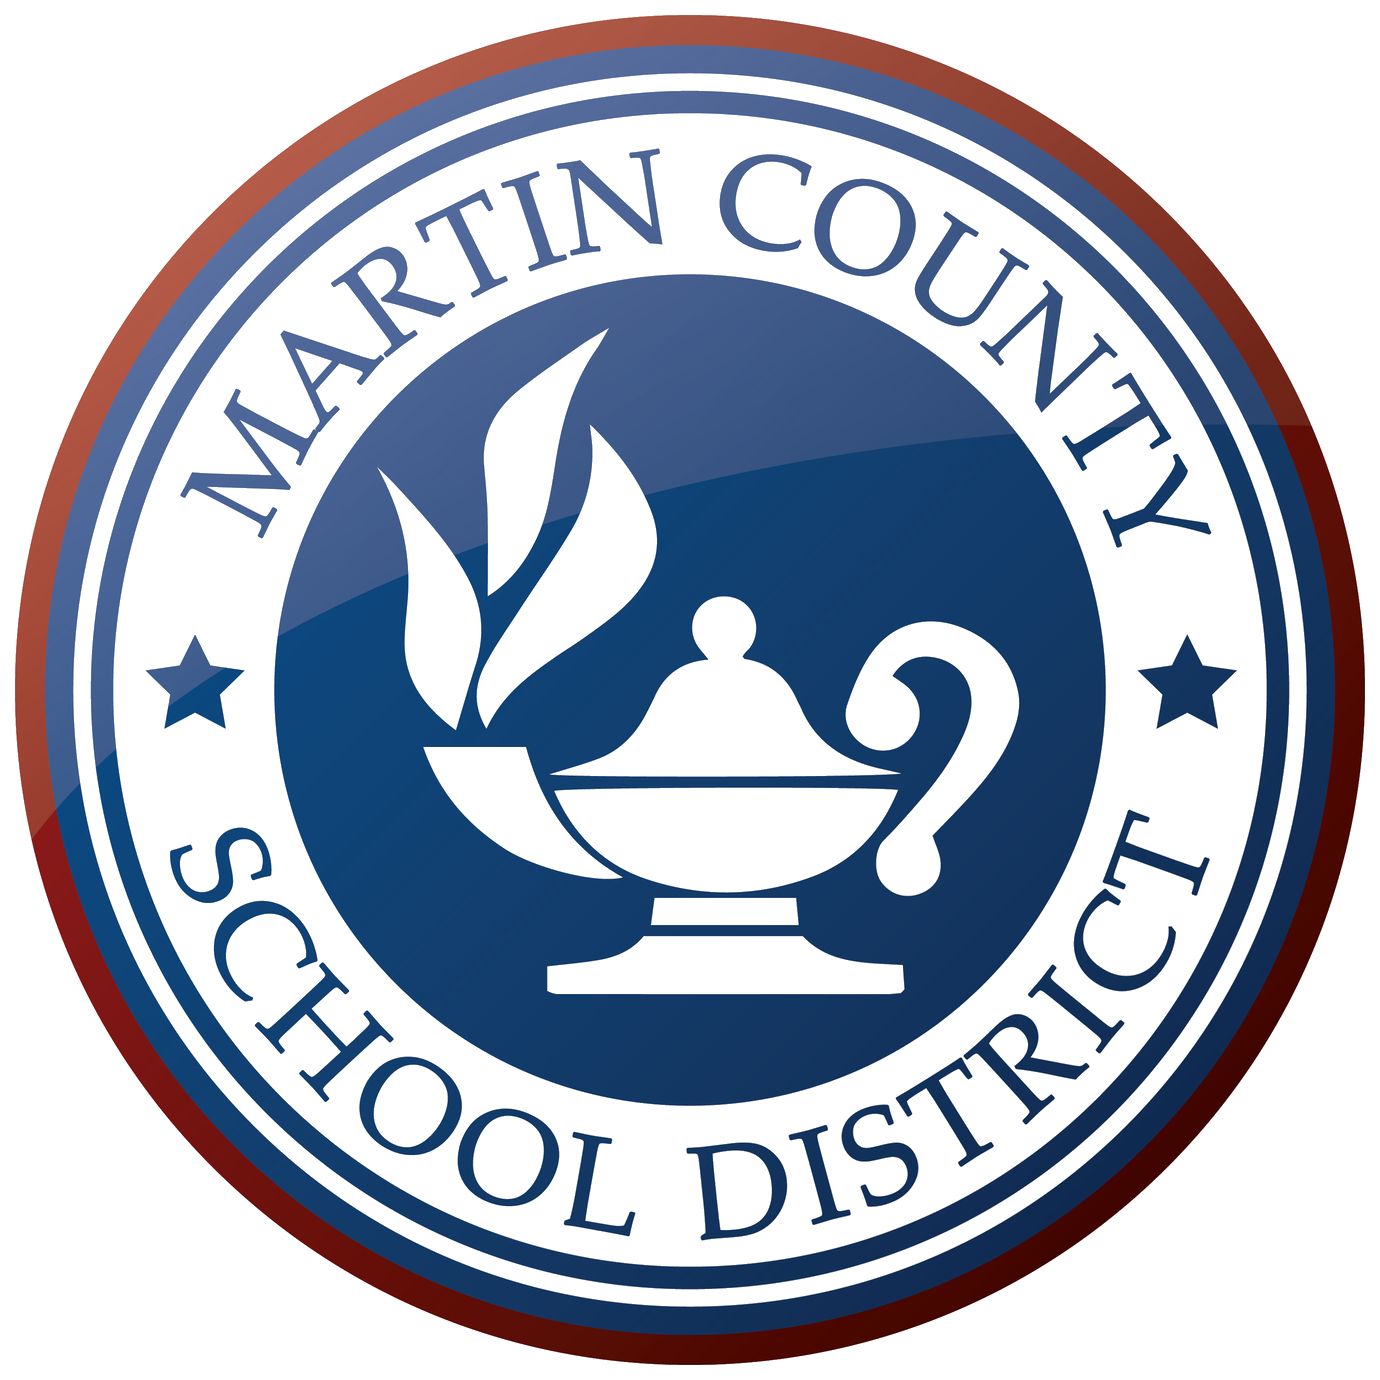 Martin County School District / Homepage With Regard To Martin County School District Calendar